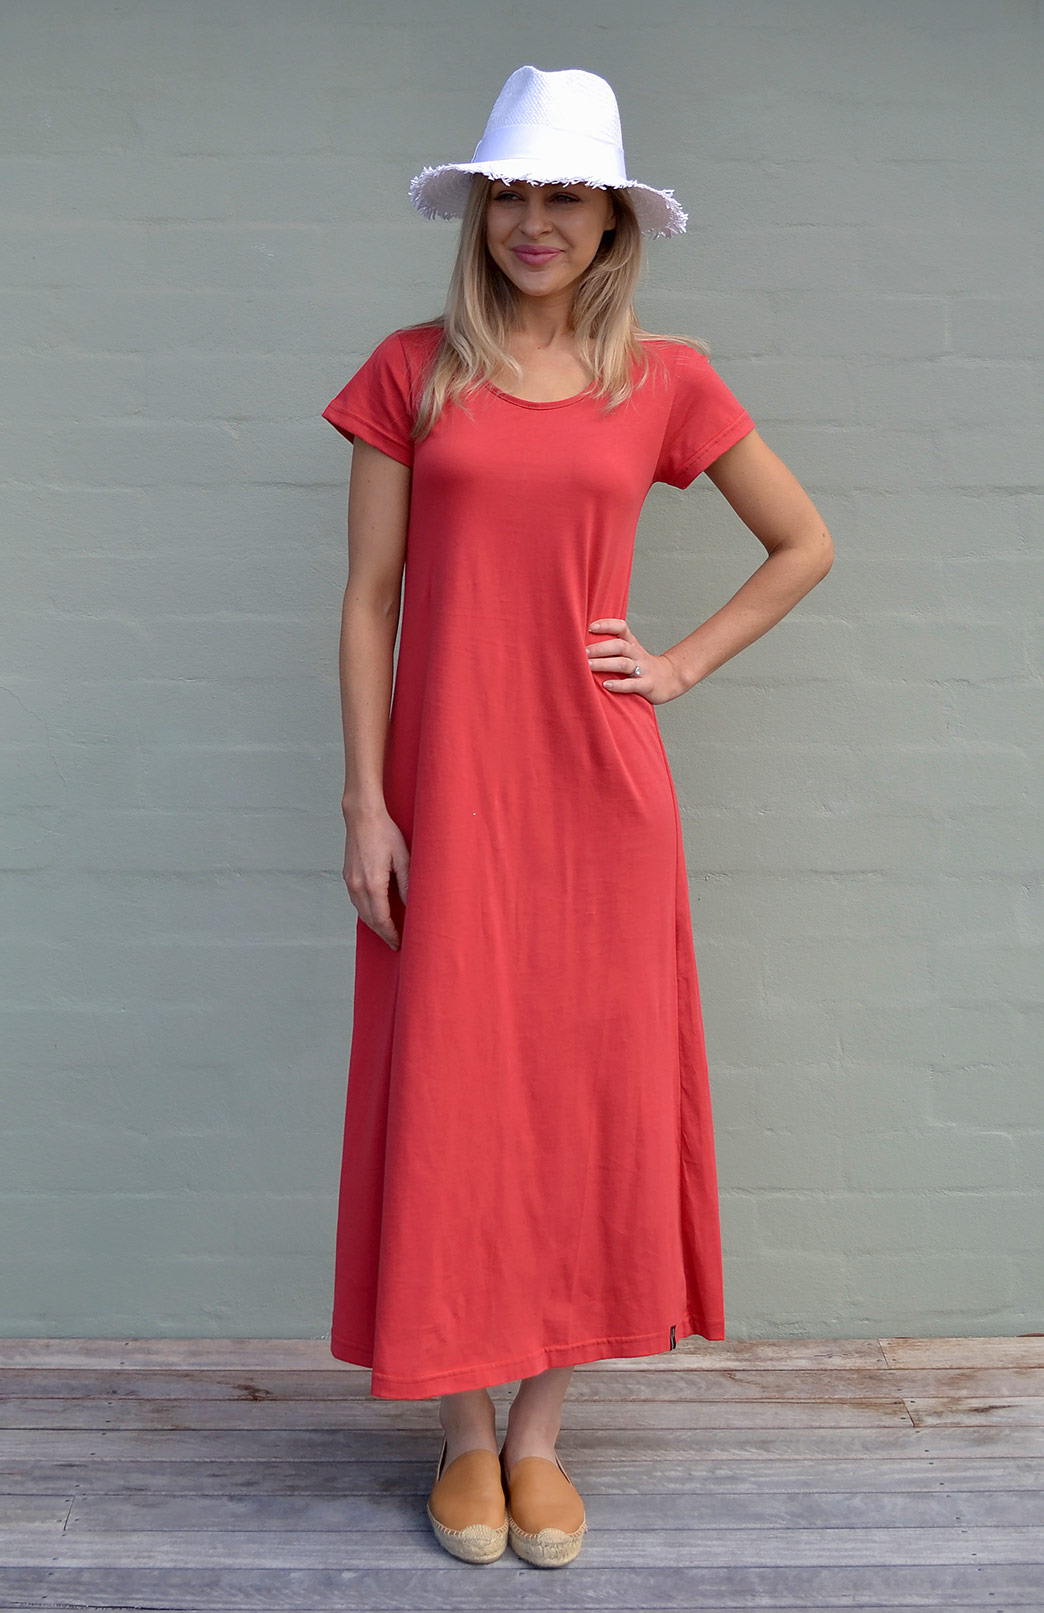 Organic Cotton T-Shirt Dress - Women's Ruby Red Organic Cotton Short Sleeve Dress - Smitten Merino Tasmania Australia